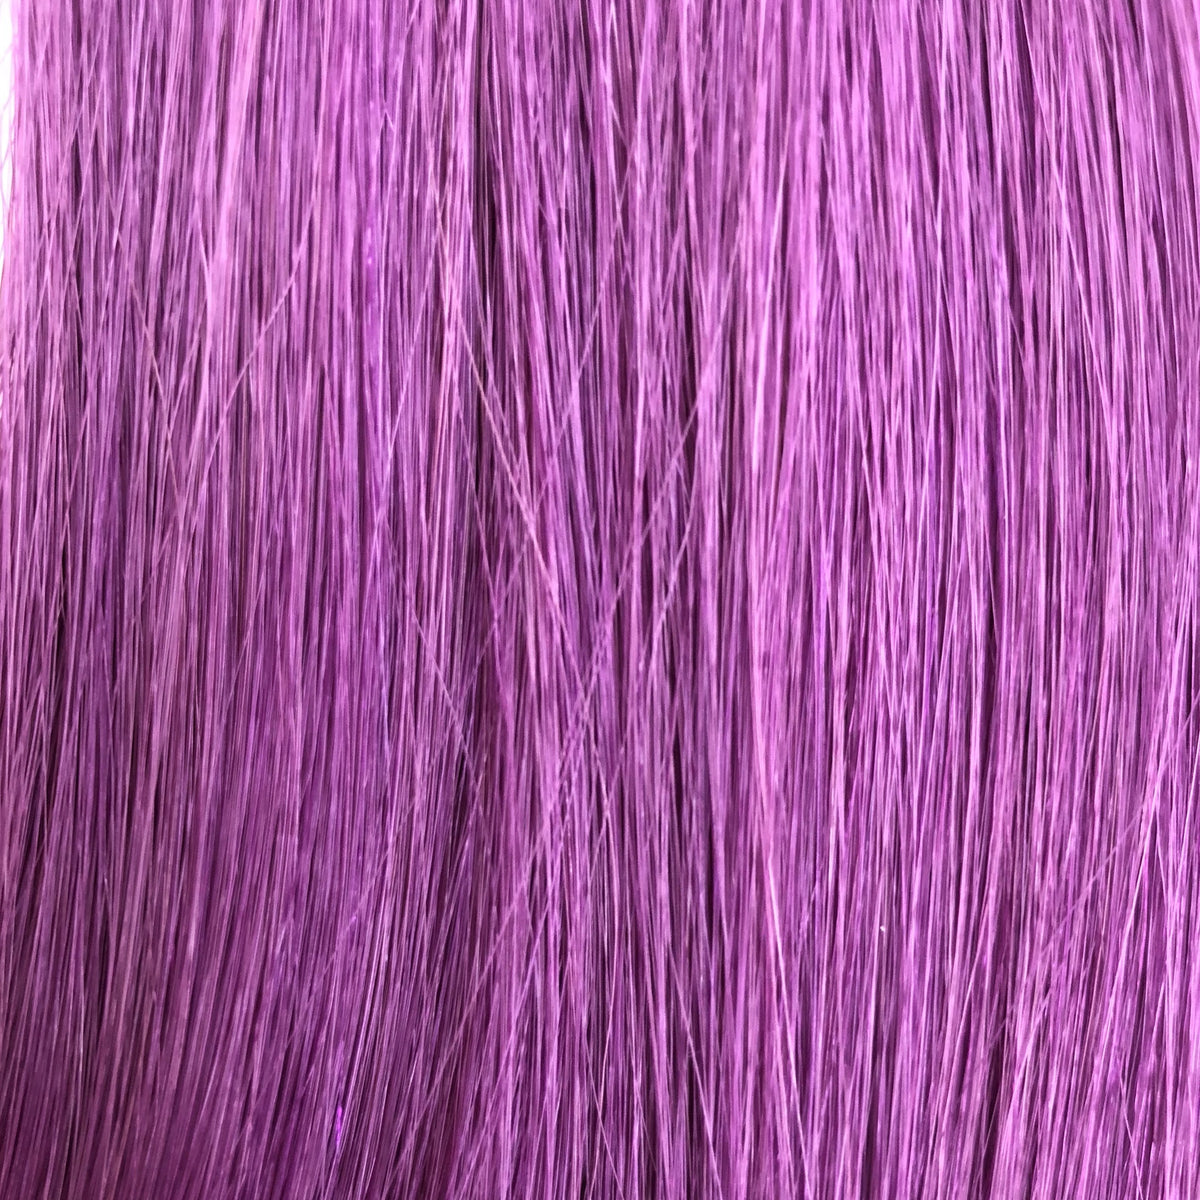 Laced Hair Tape-In Extensions Deep Purple